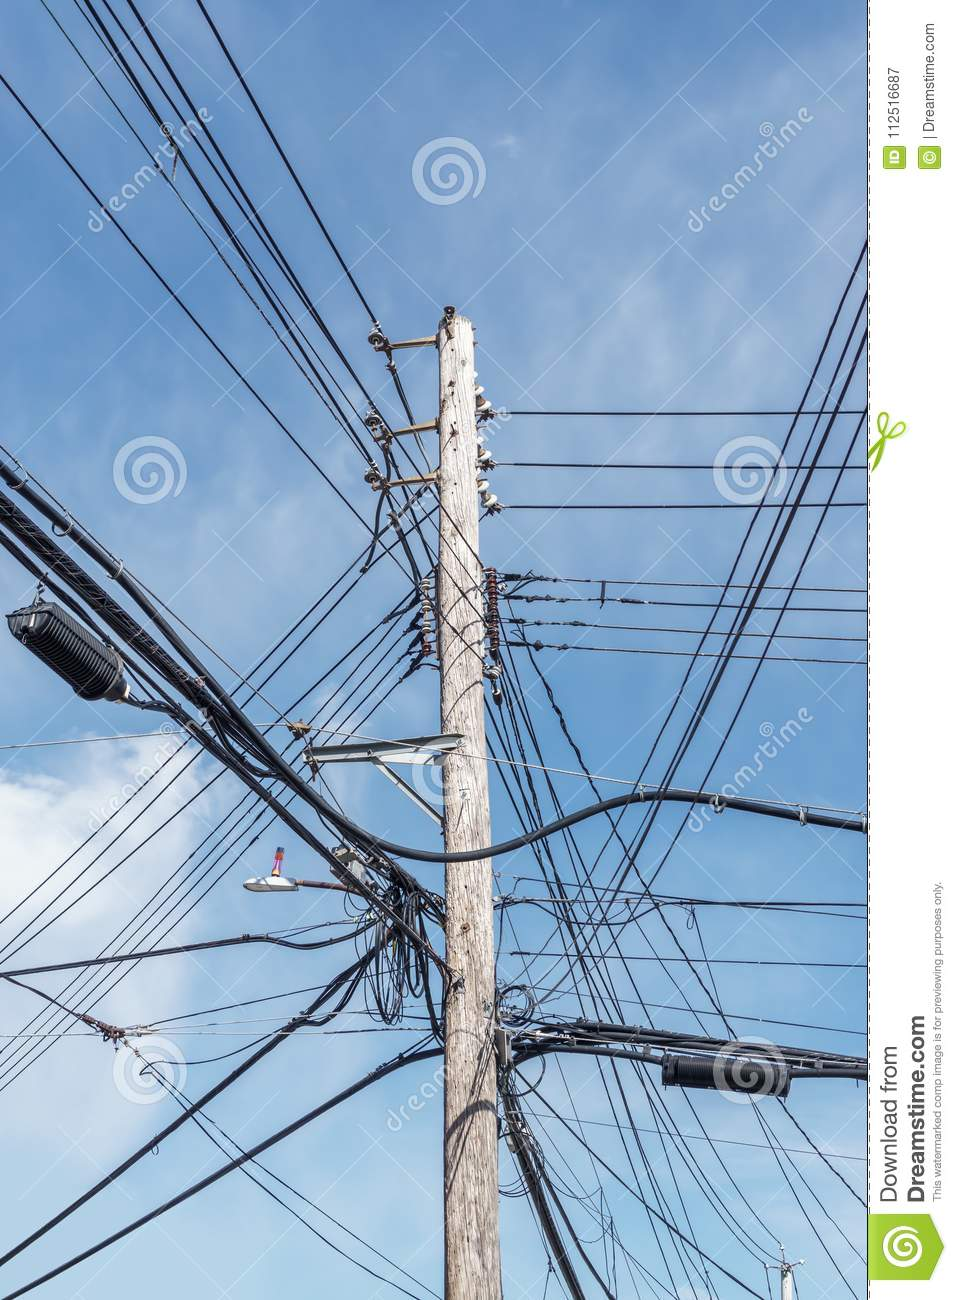 Tall Wooden Power Pole With Lots Of Overhead Wires, Coiled